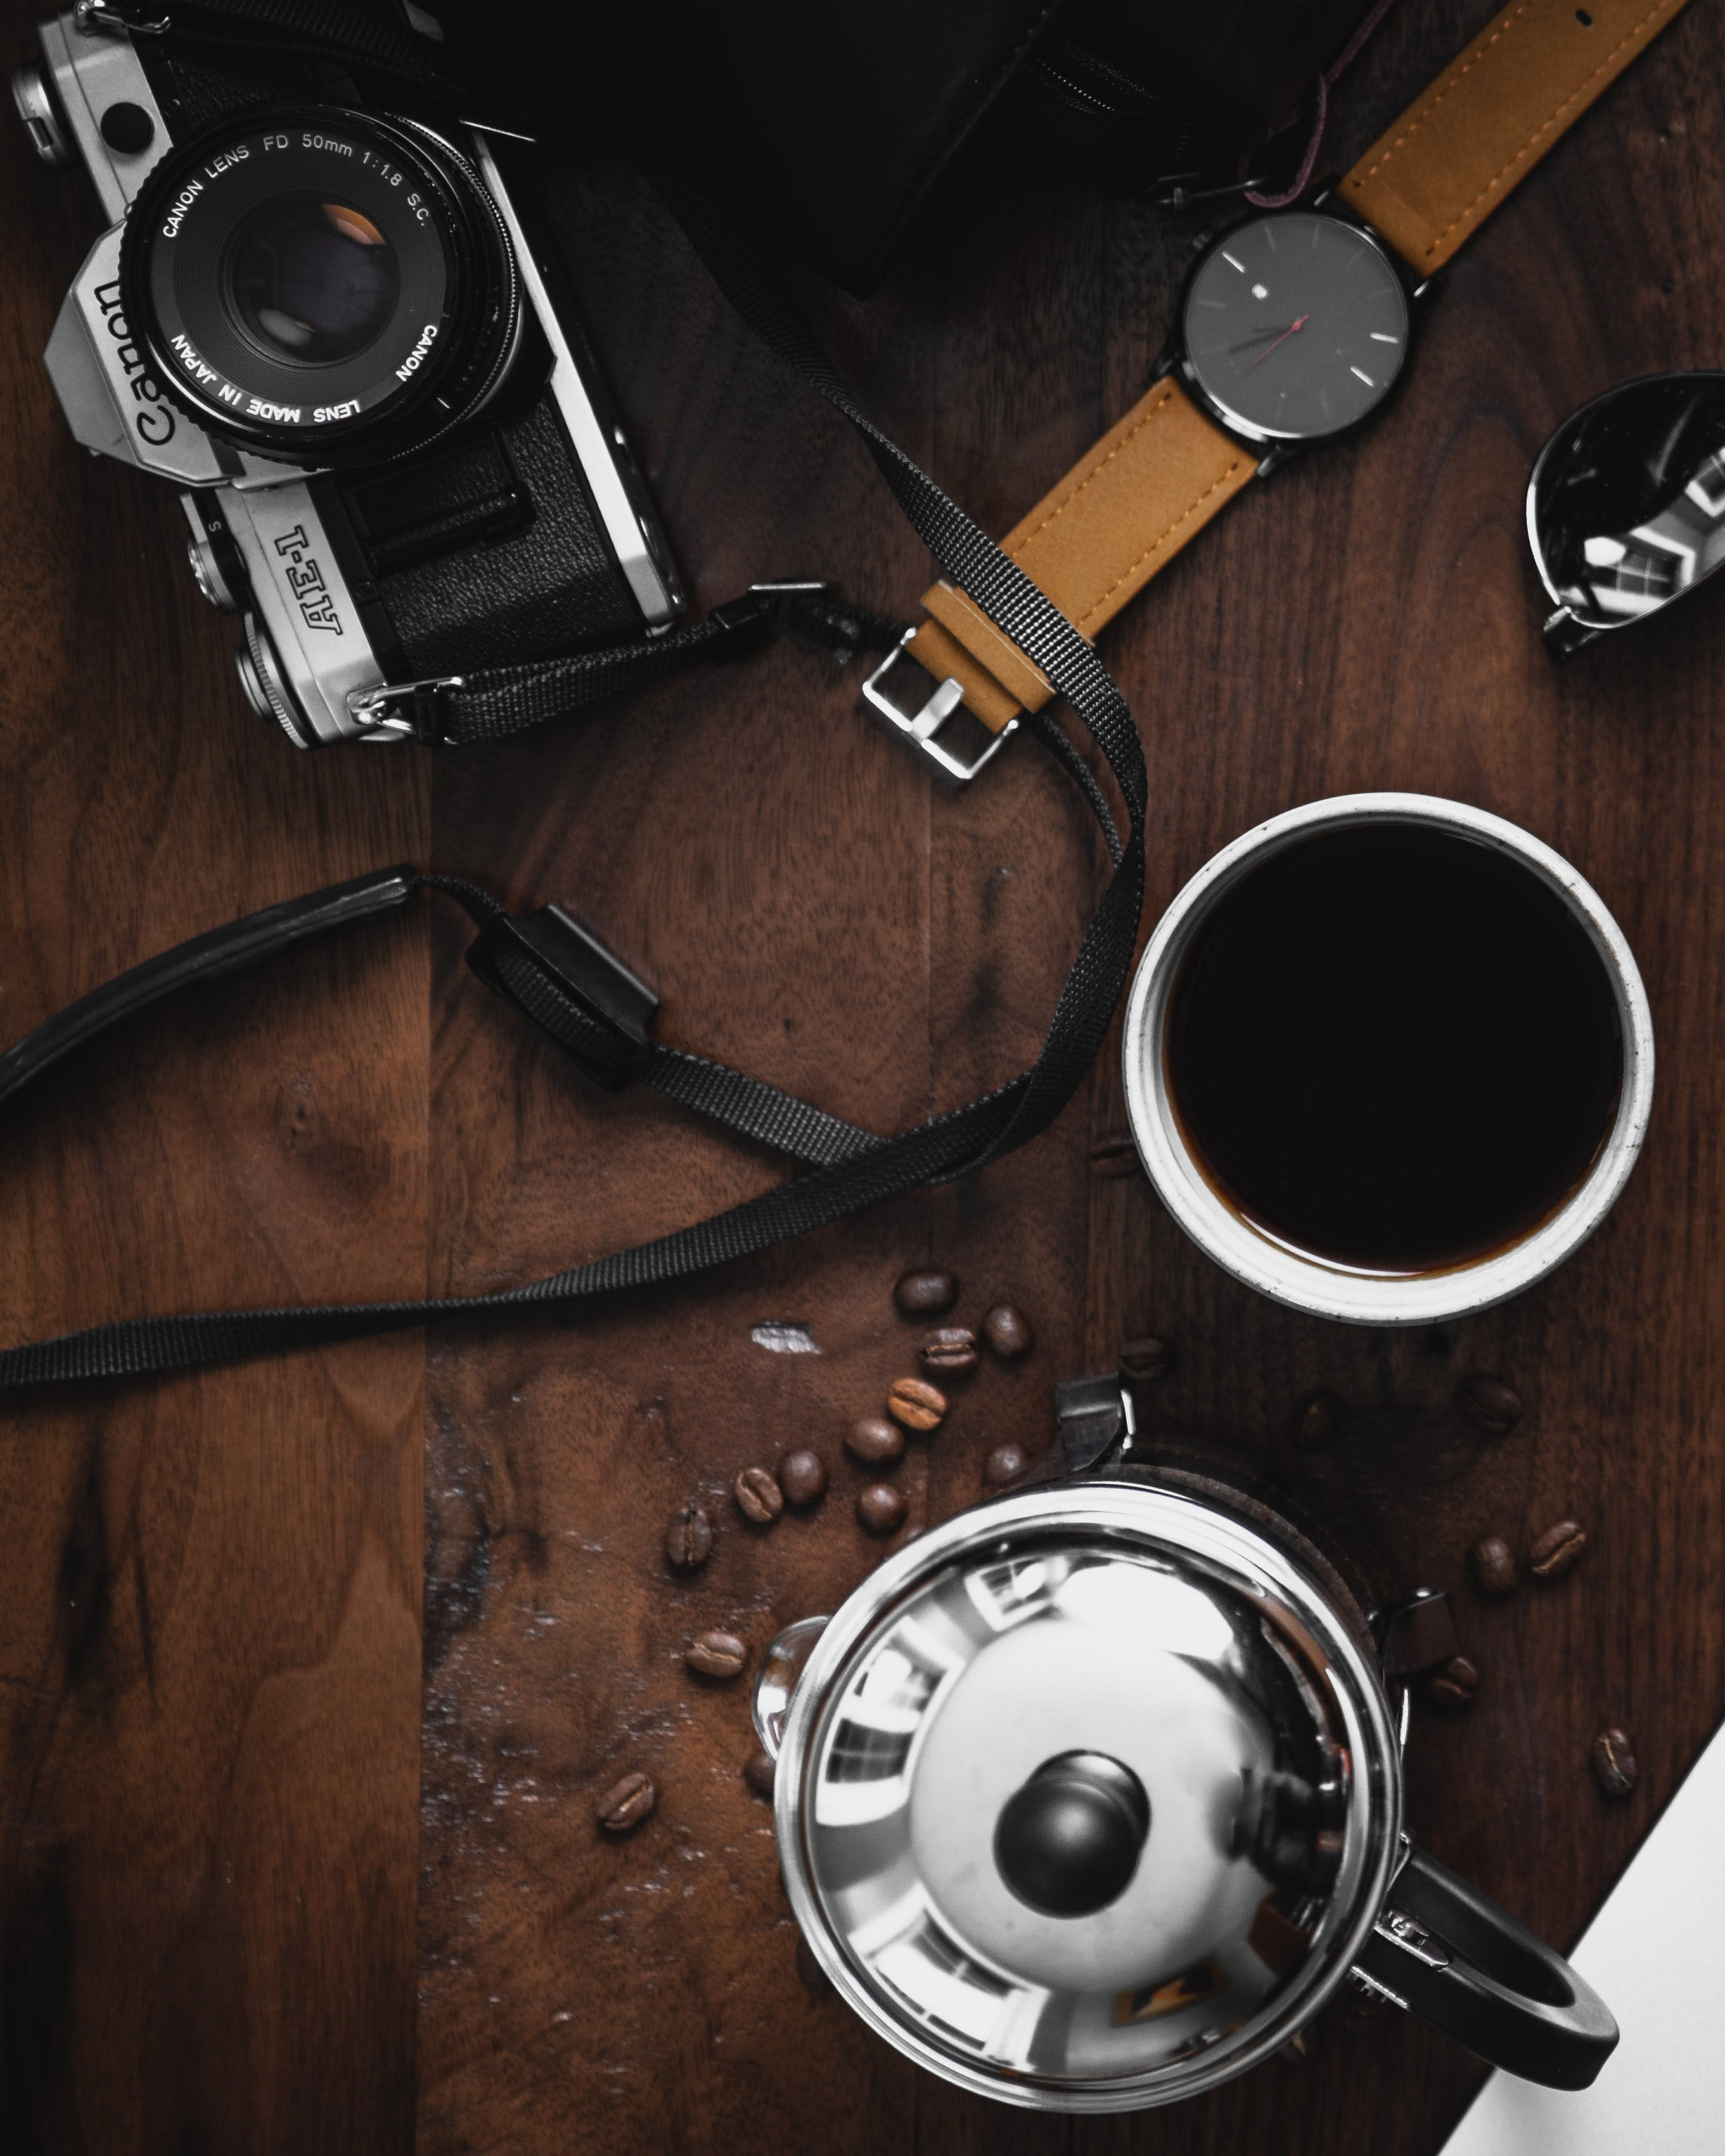 Flat Lay Photography of a Camera, Coffee Mug and Wristwatch